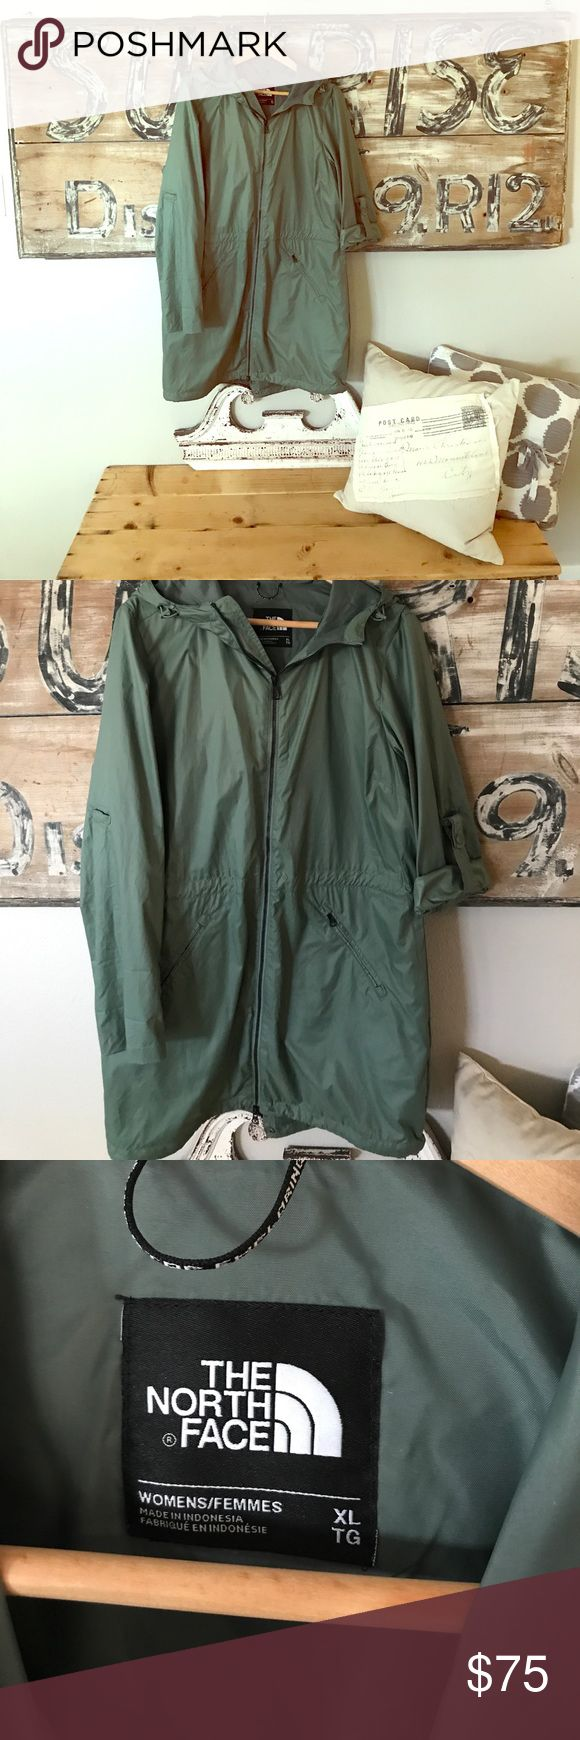 The North Face anorak jacket Optional roll up sleeve. Lightweight and water resistant. Never worn The North Face Jackets & Coats